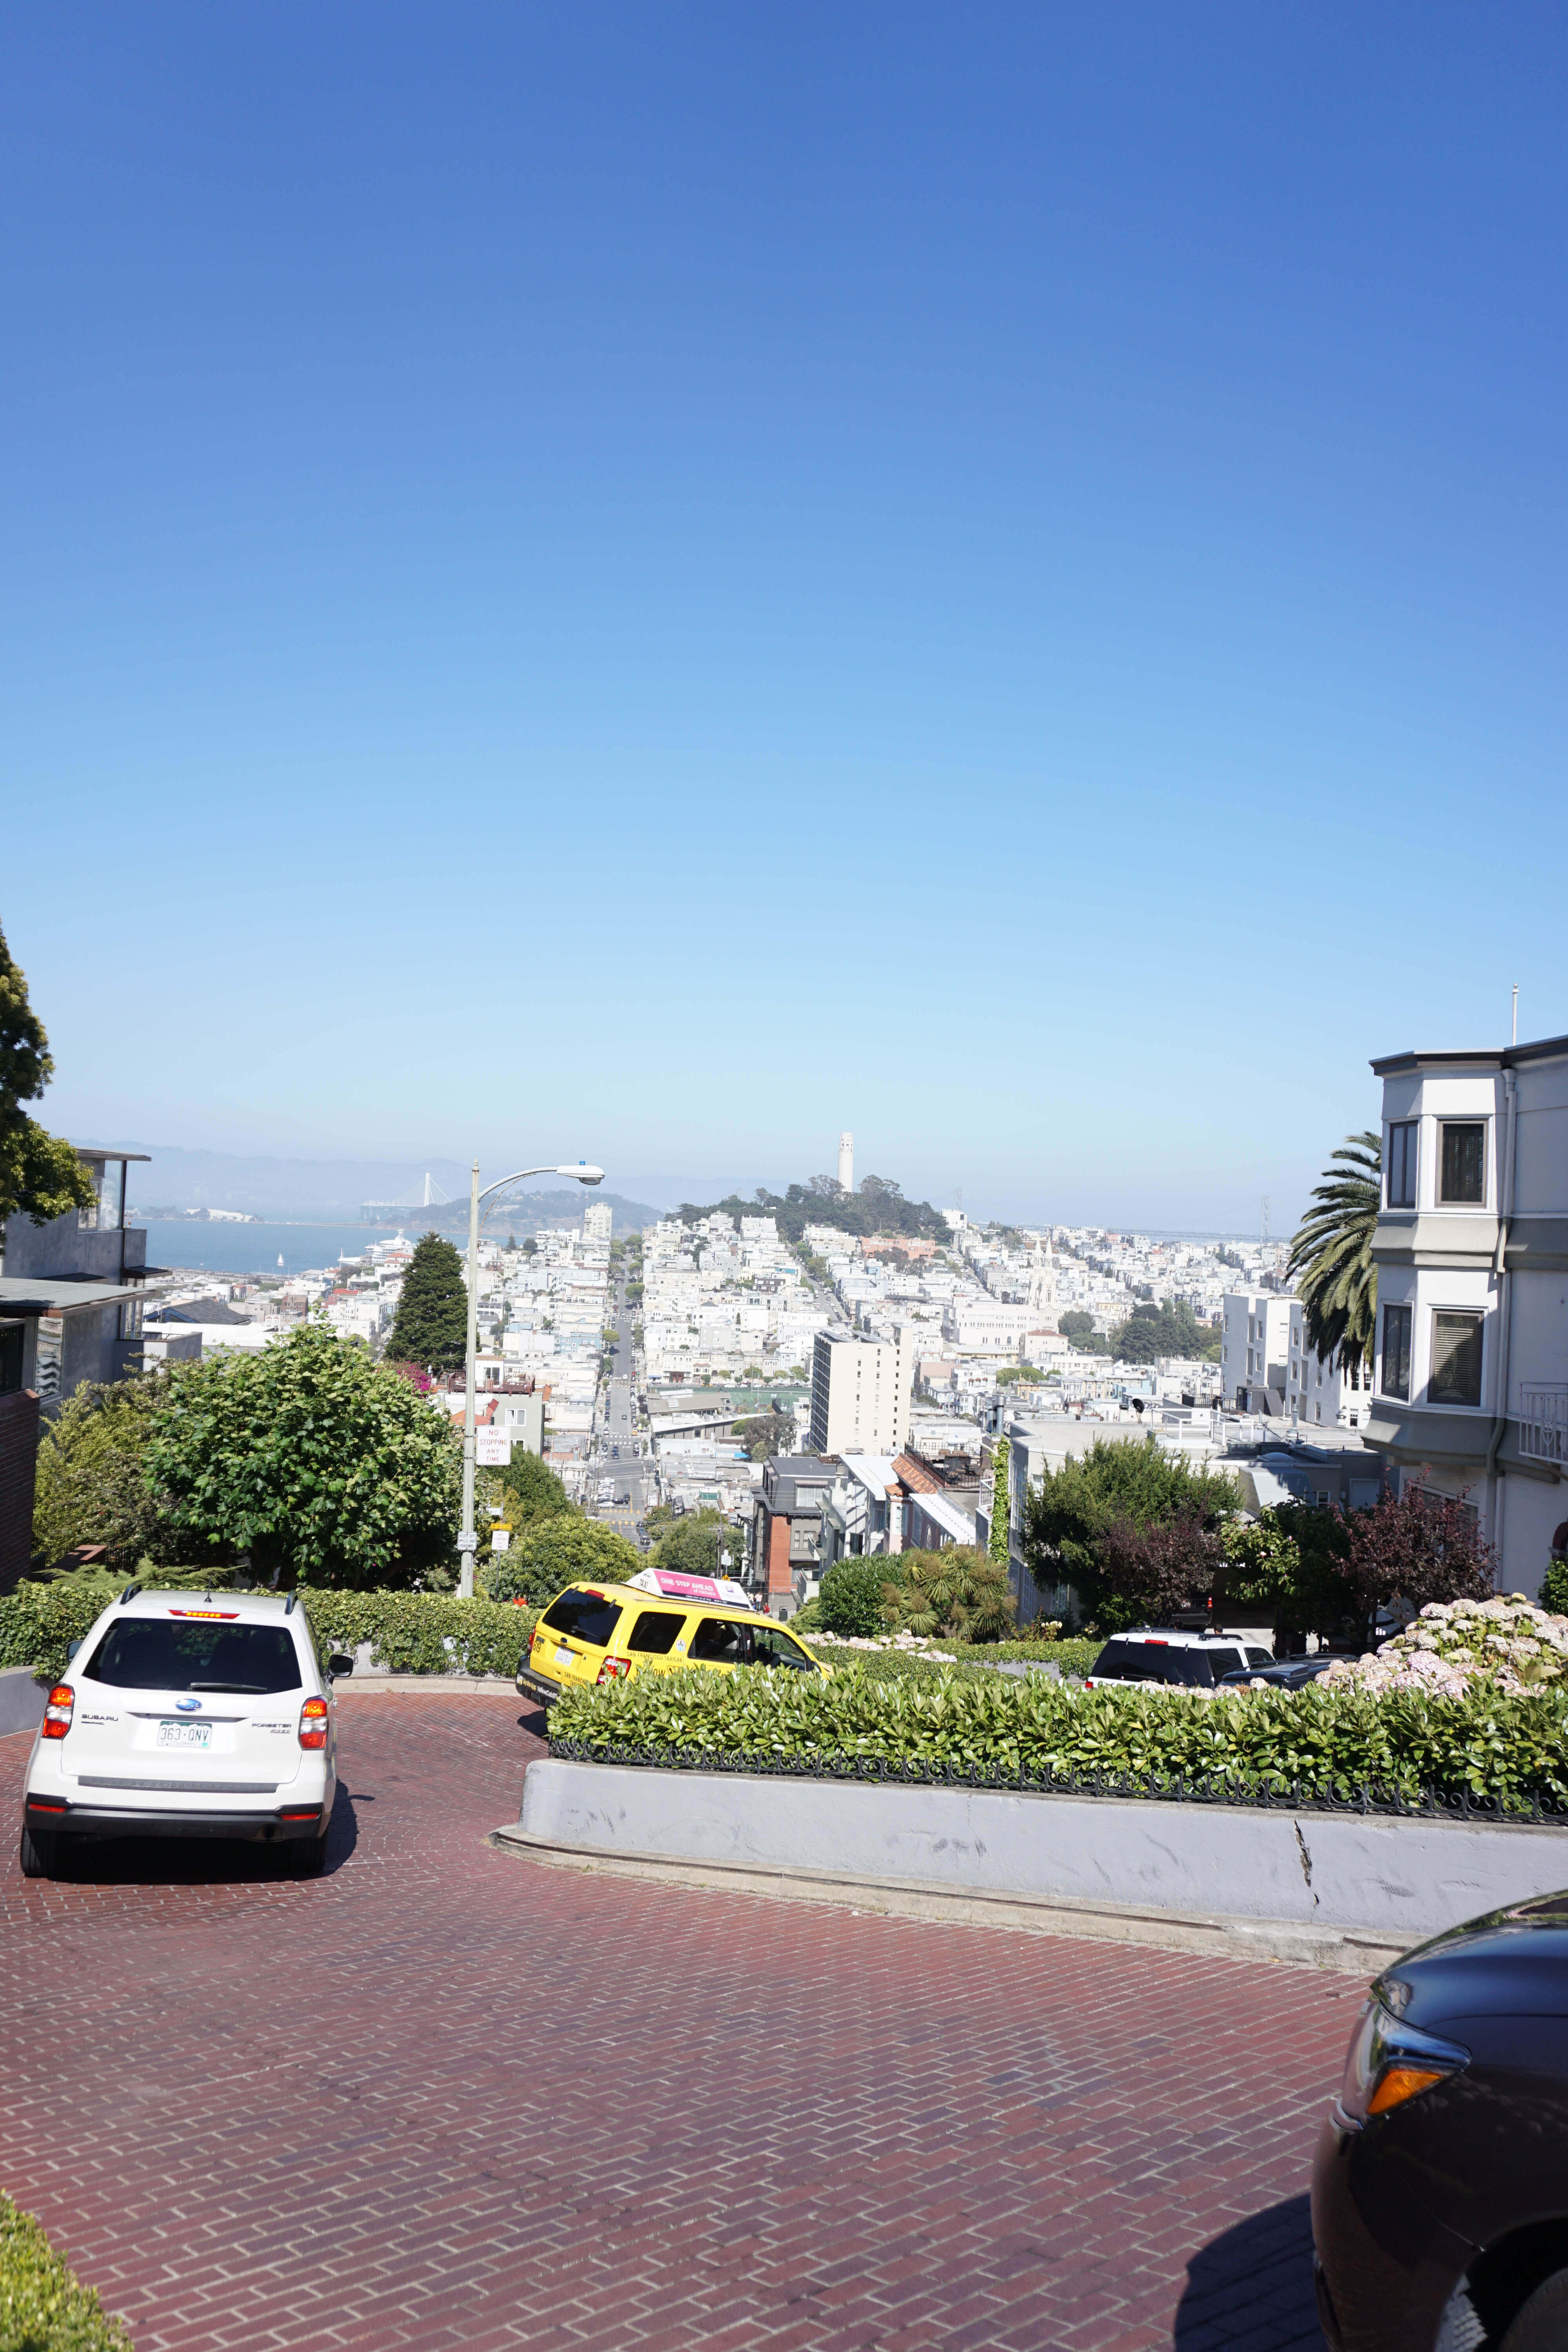 San Francisco Things To Do: Lombard Street. What a great view!